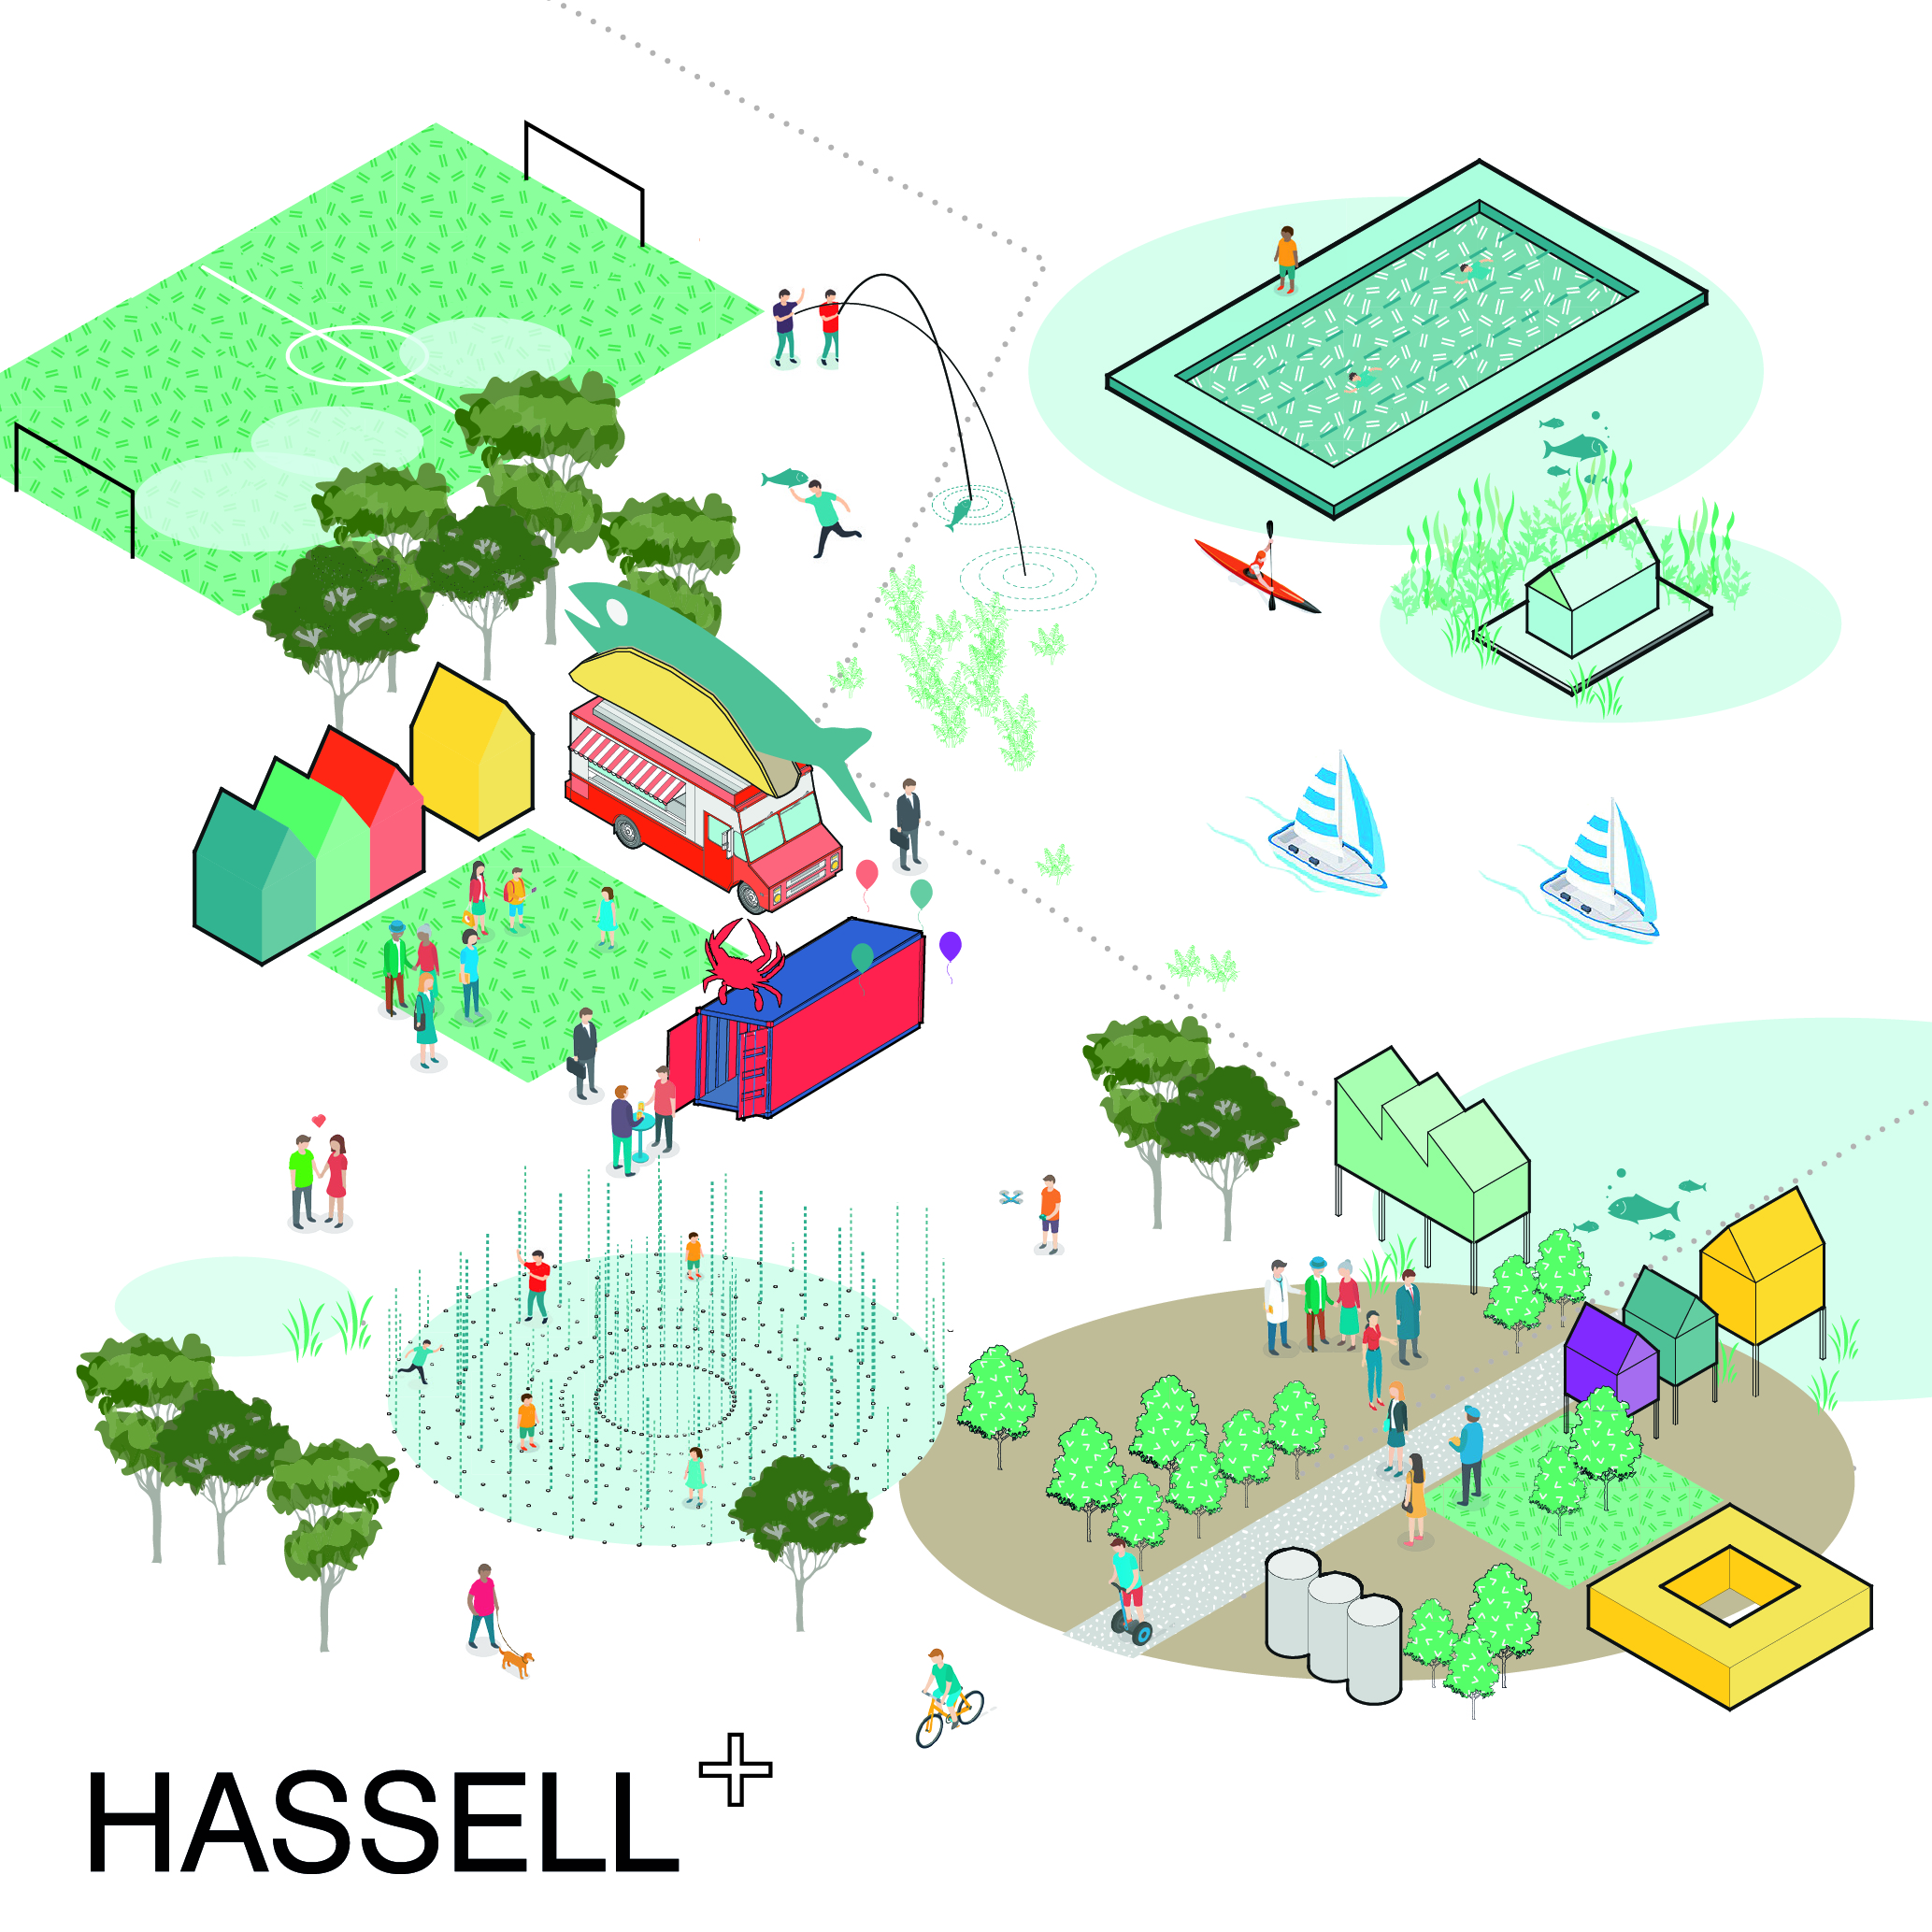 HASSELL+ - HASSELL